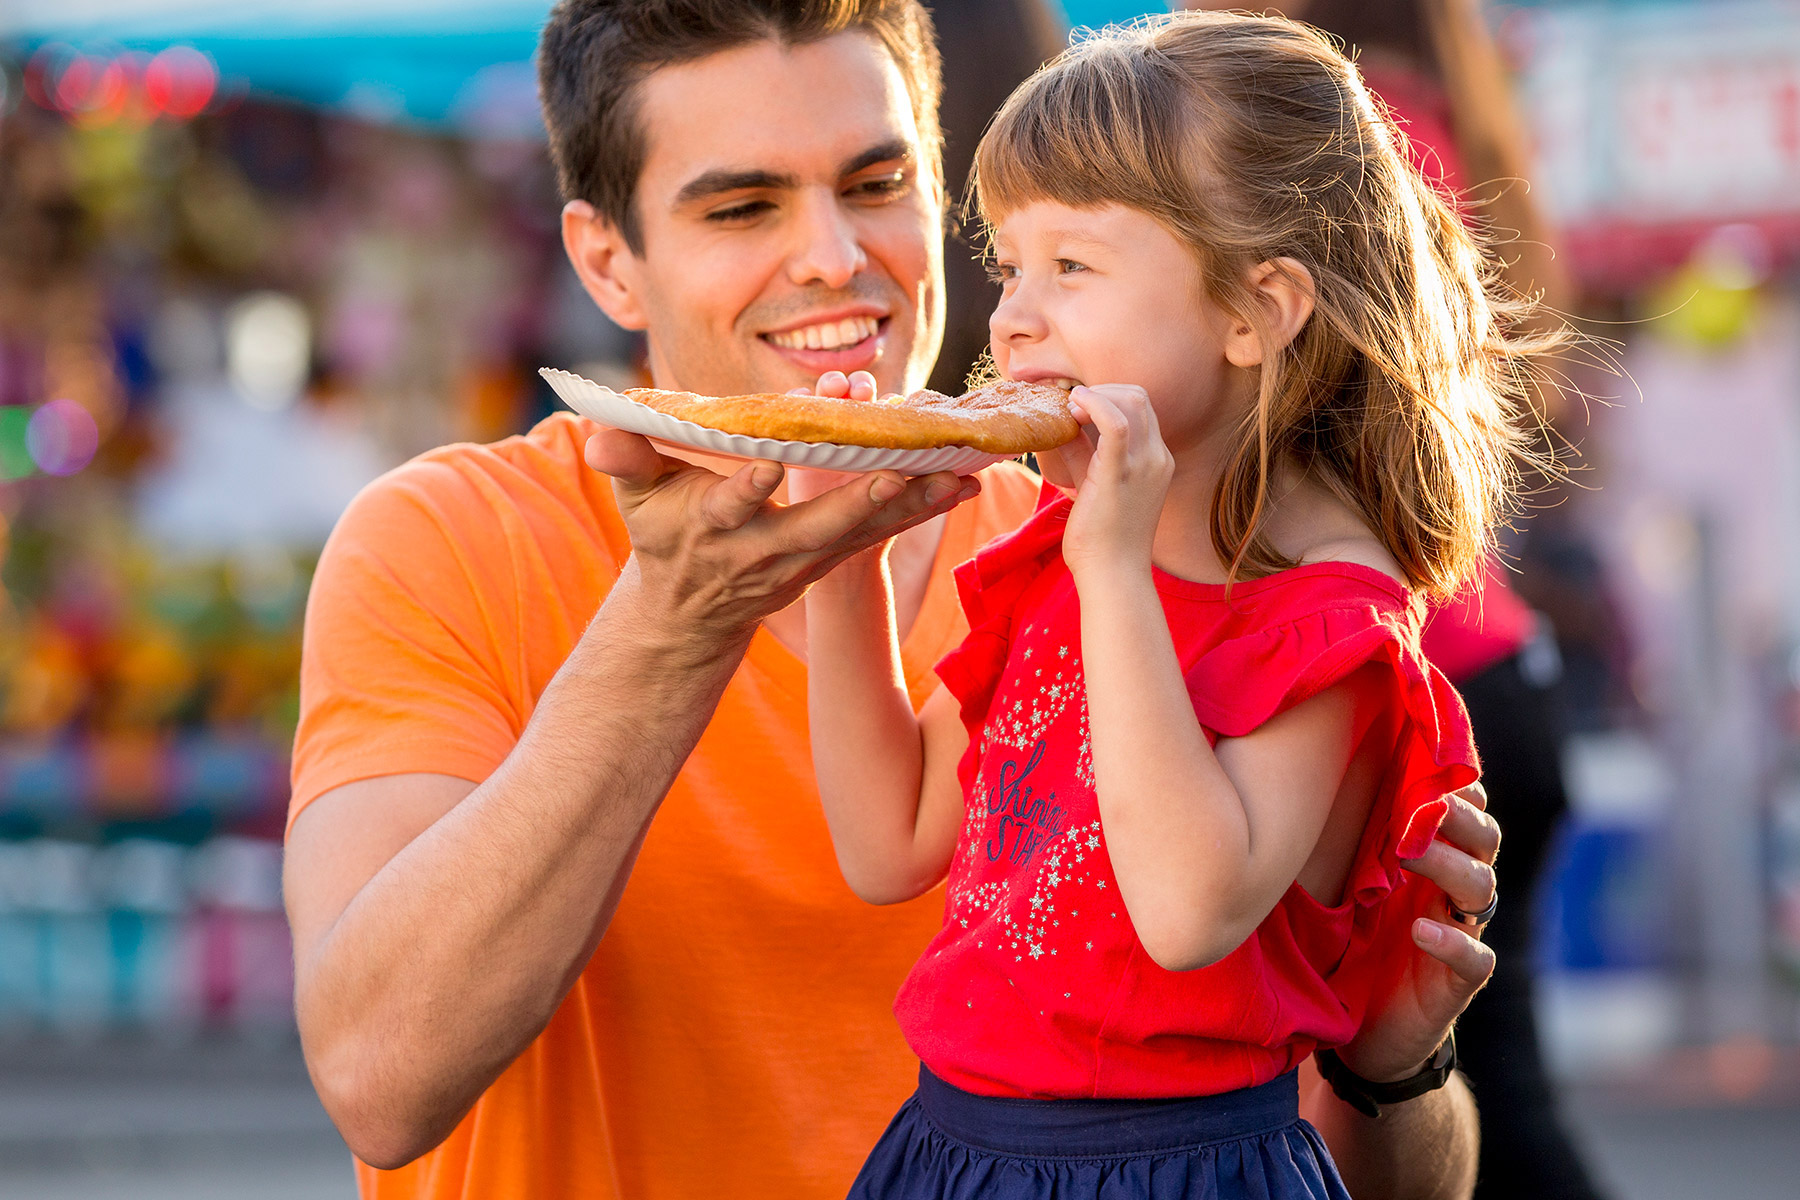 miami_lifestyle_photographer_david_gonzalez_environmental_portrait_kid_fun_fair_eating_advertising_1800.jpg